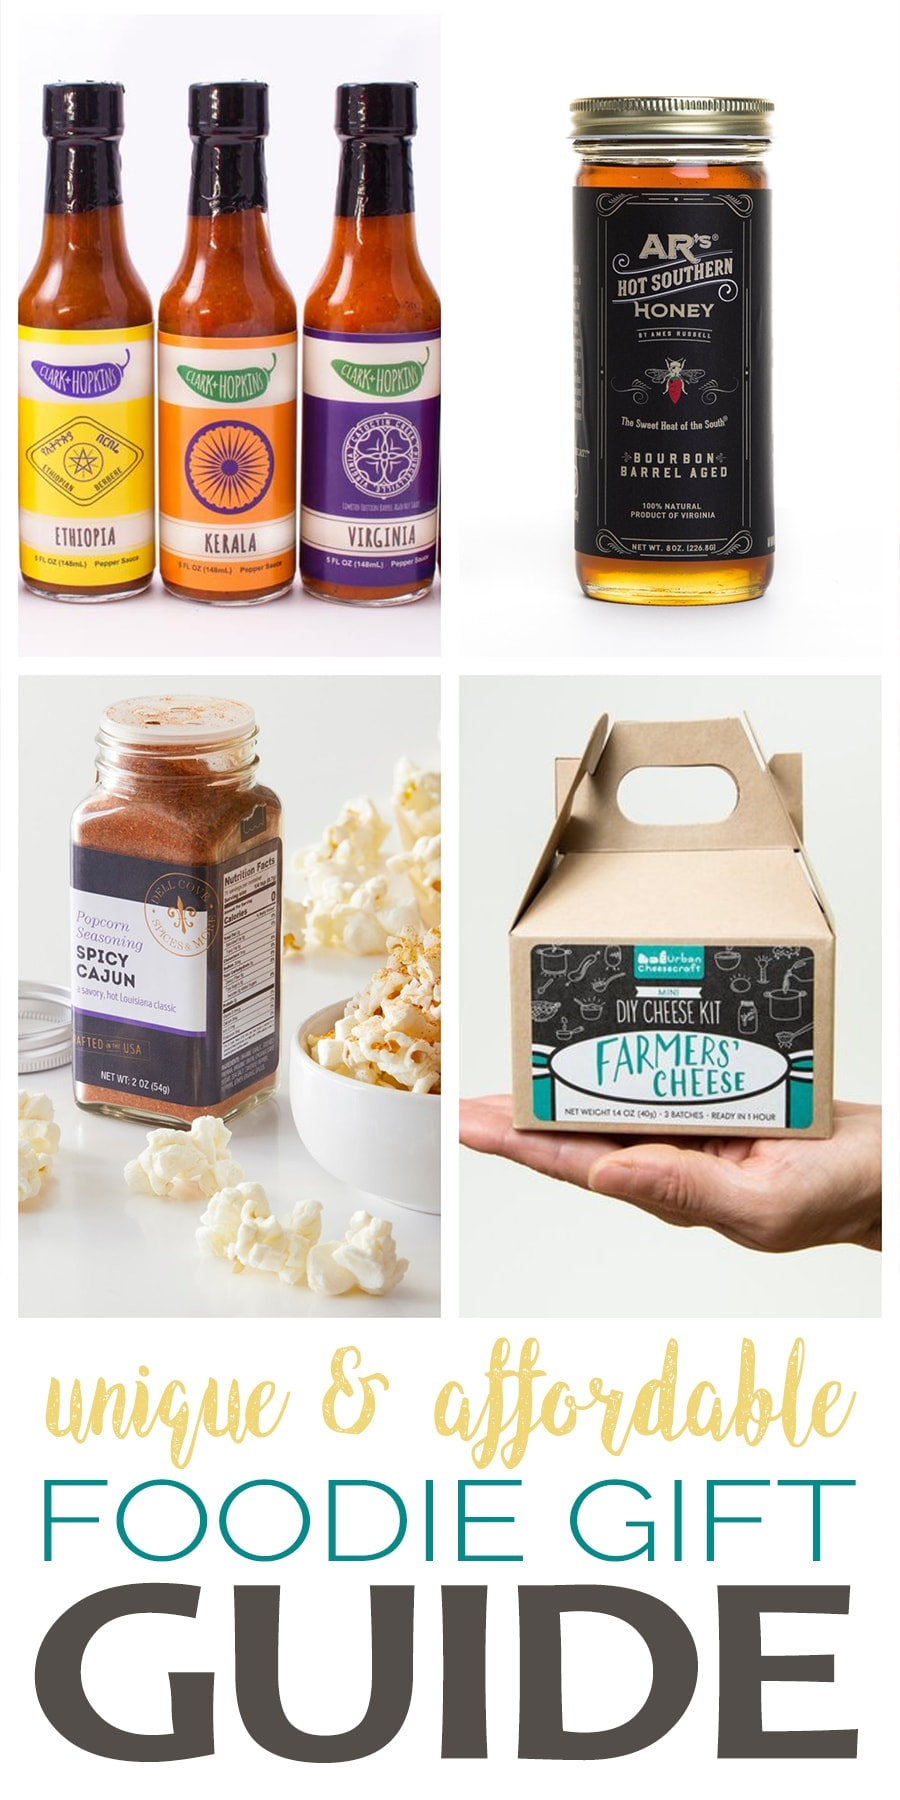 Gift Guide - Unique Foodie Gifts Made in America